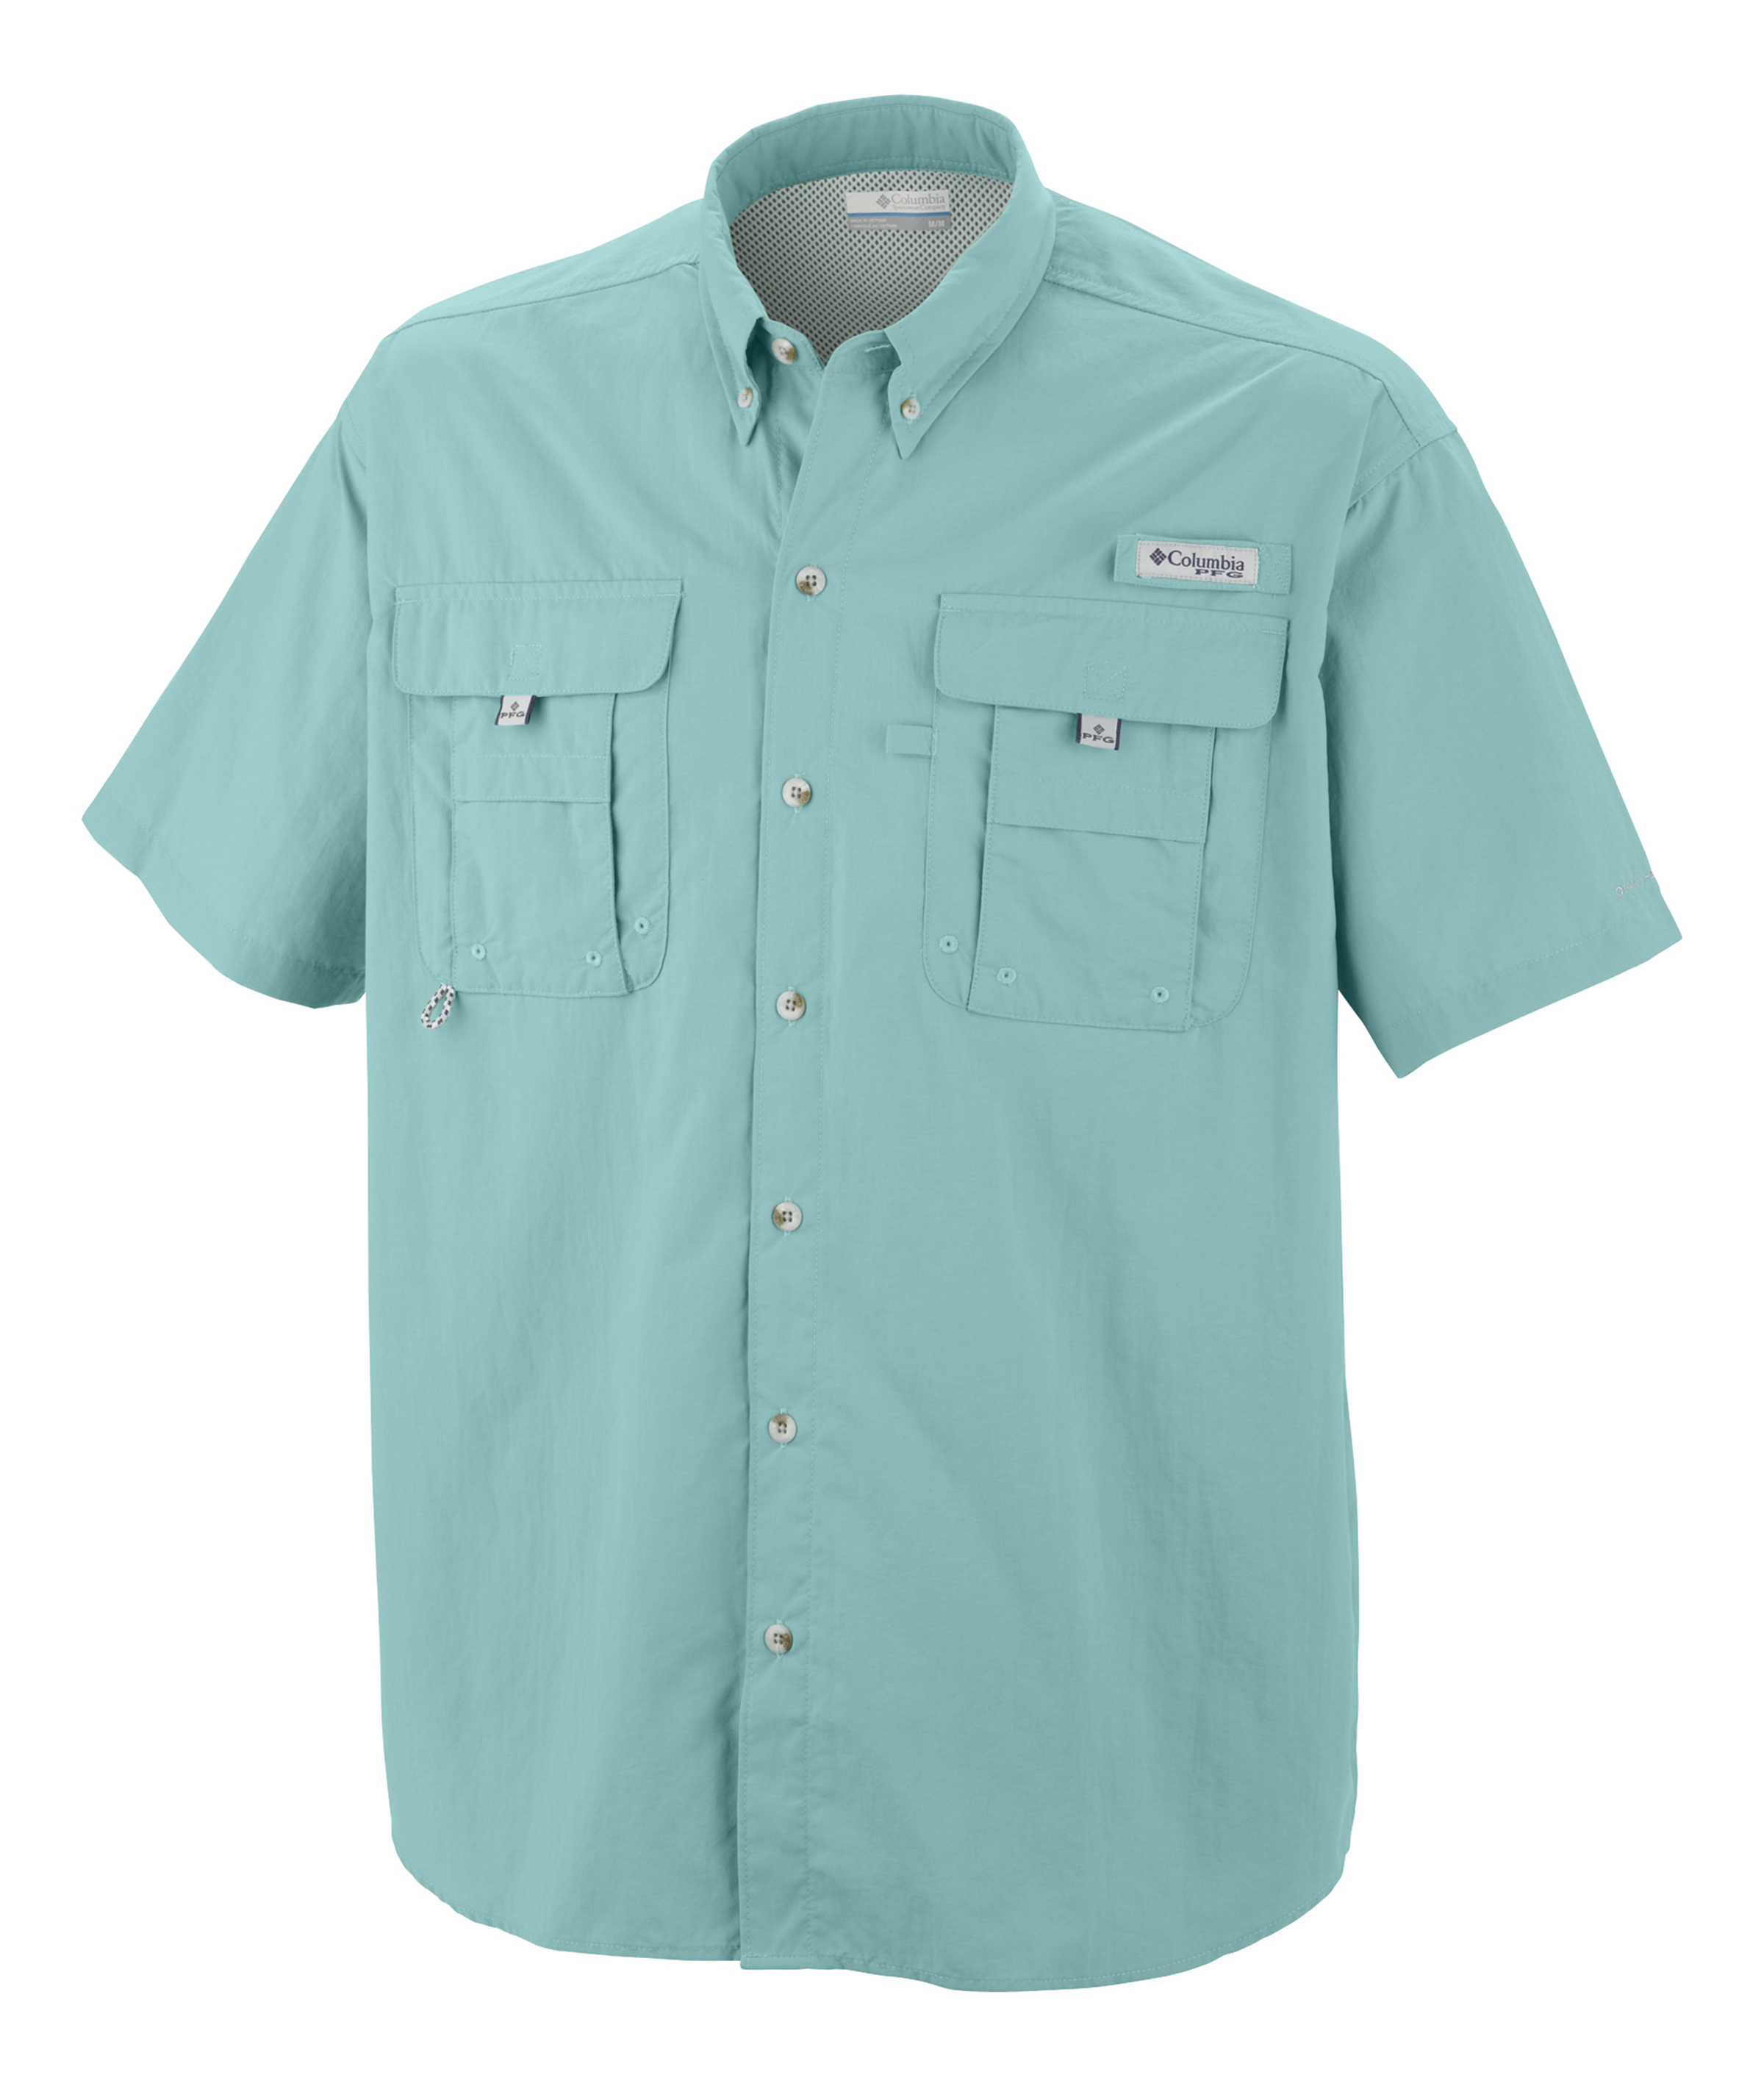 9bc5f04002e Columbia Men's Bahama II Short Sleeve Shirt. 7047.